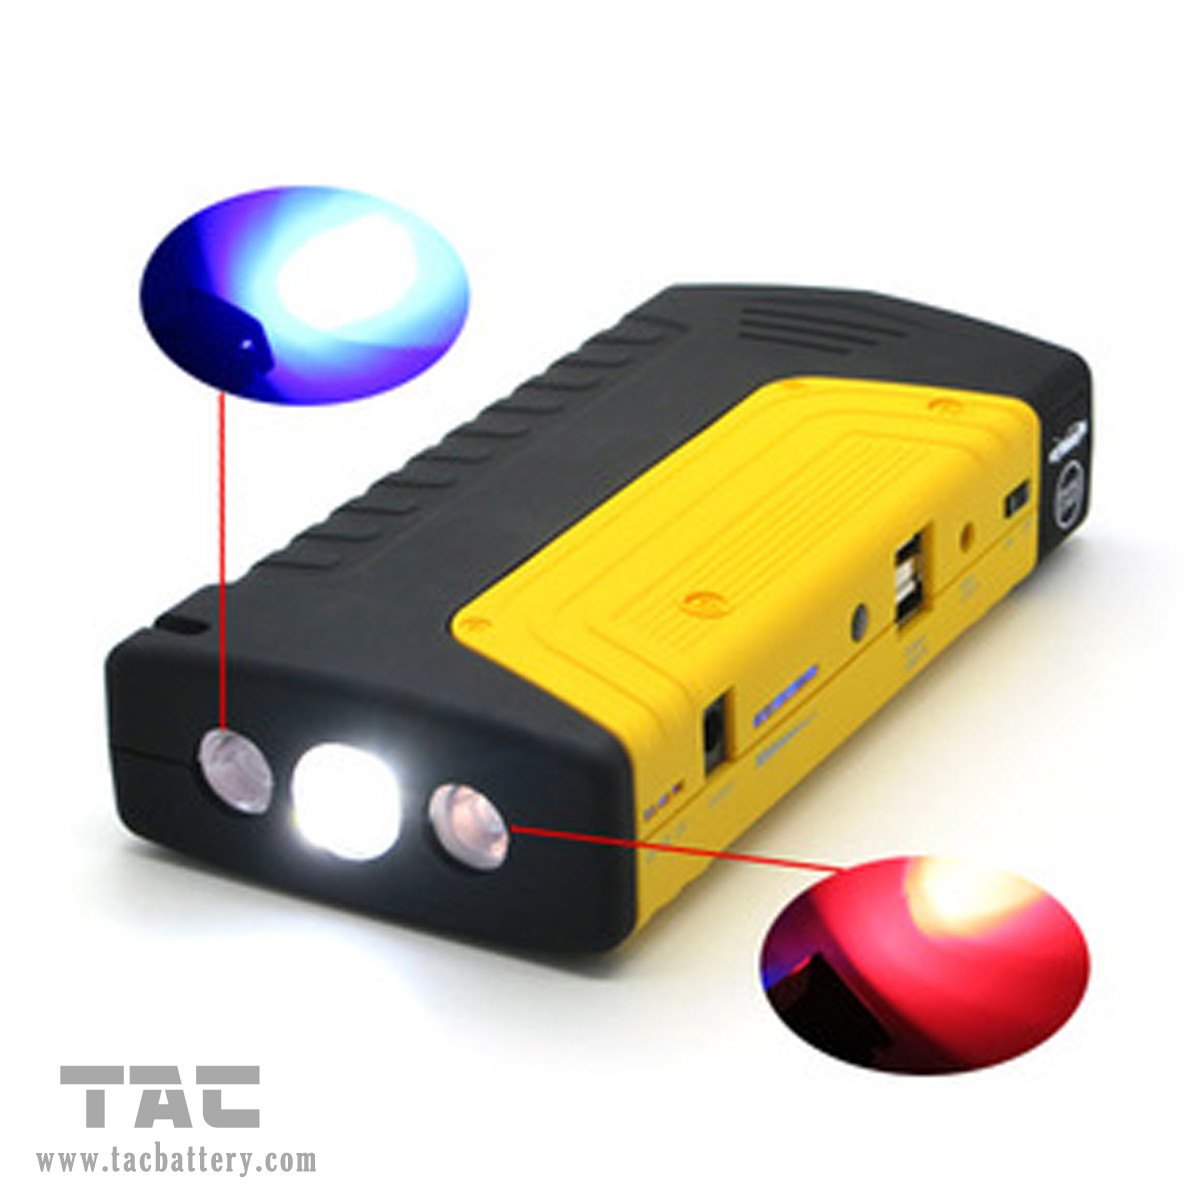 16800mAh Auto super 12v car jump starter for Laptop / Mobile Phone